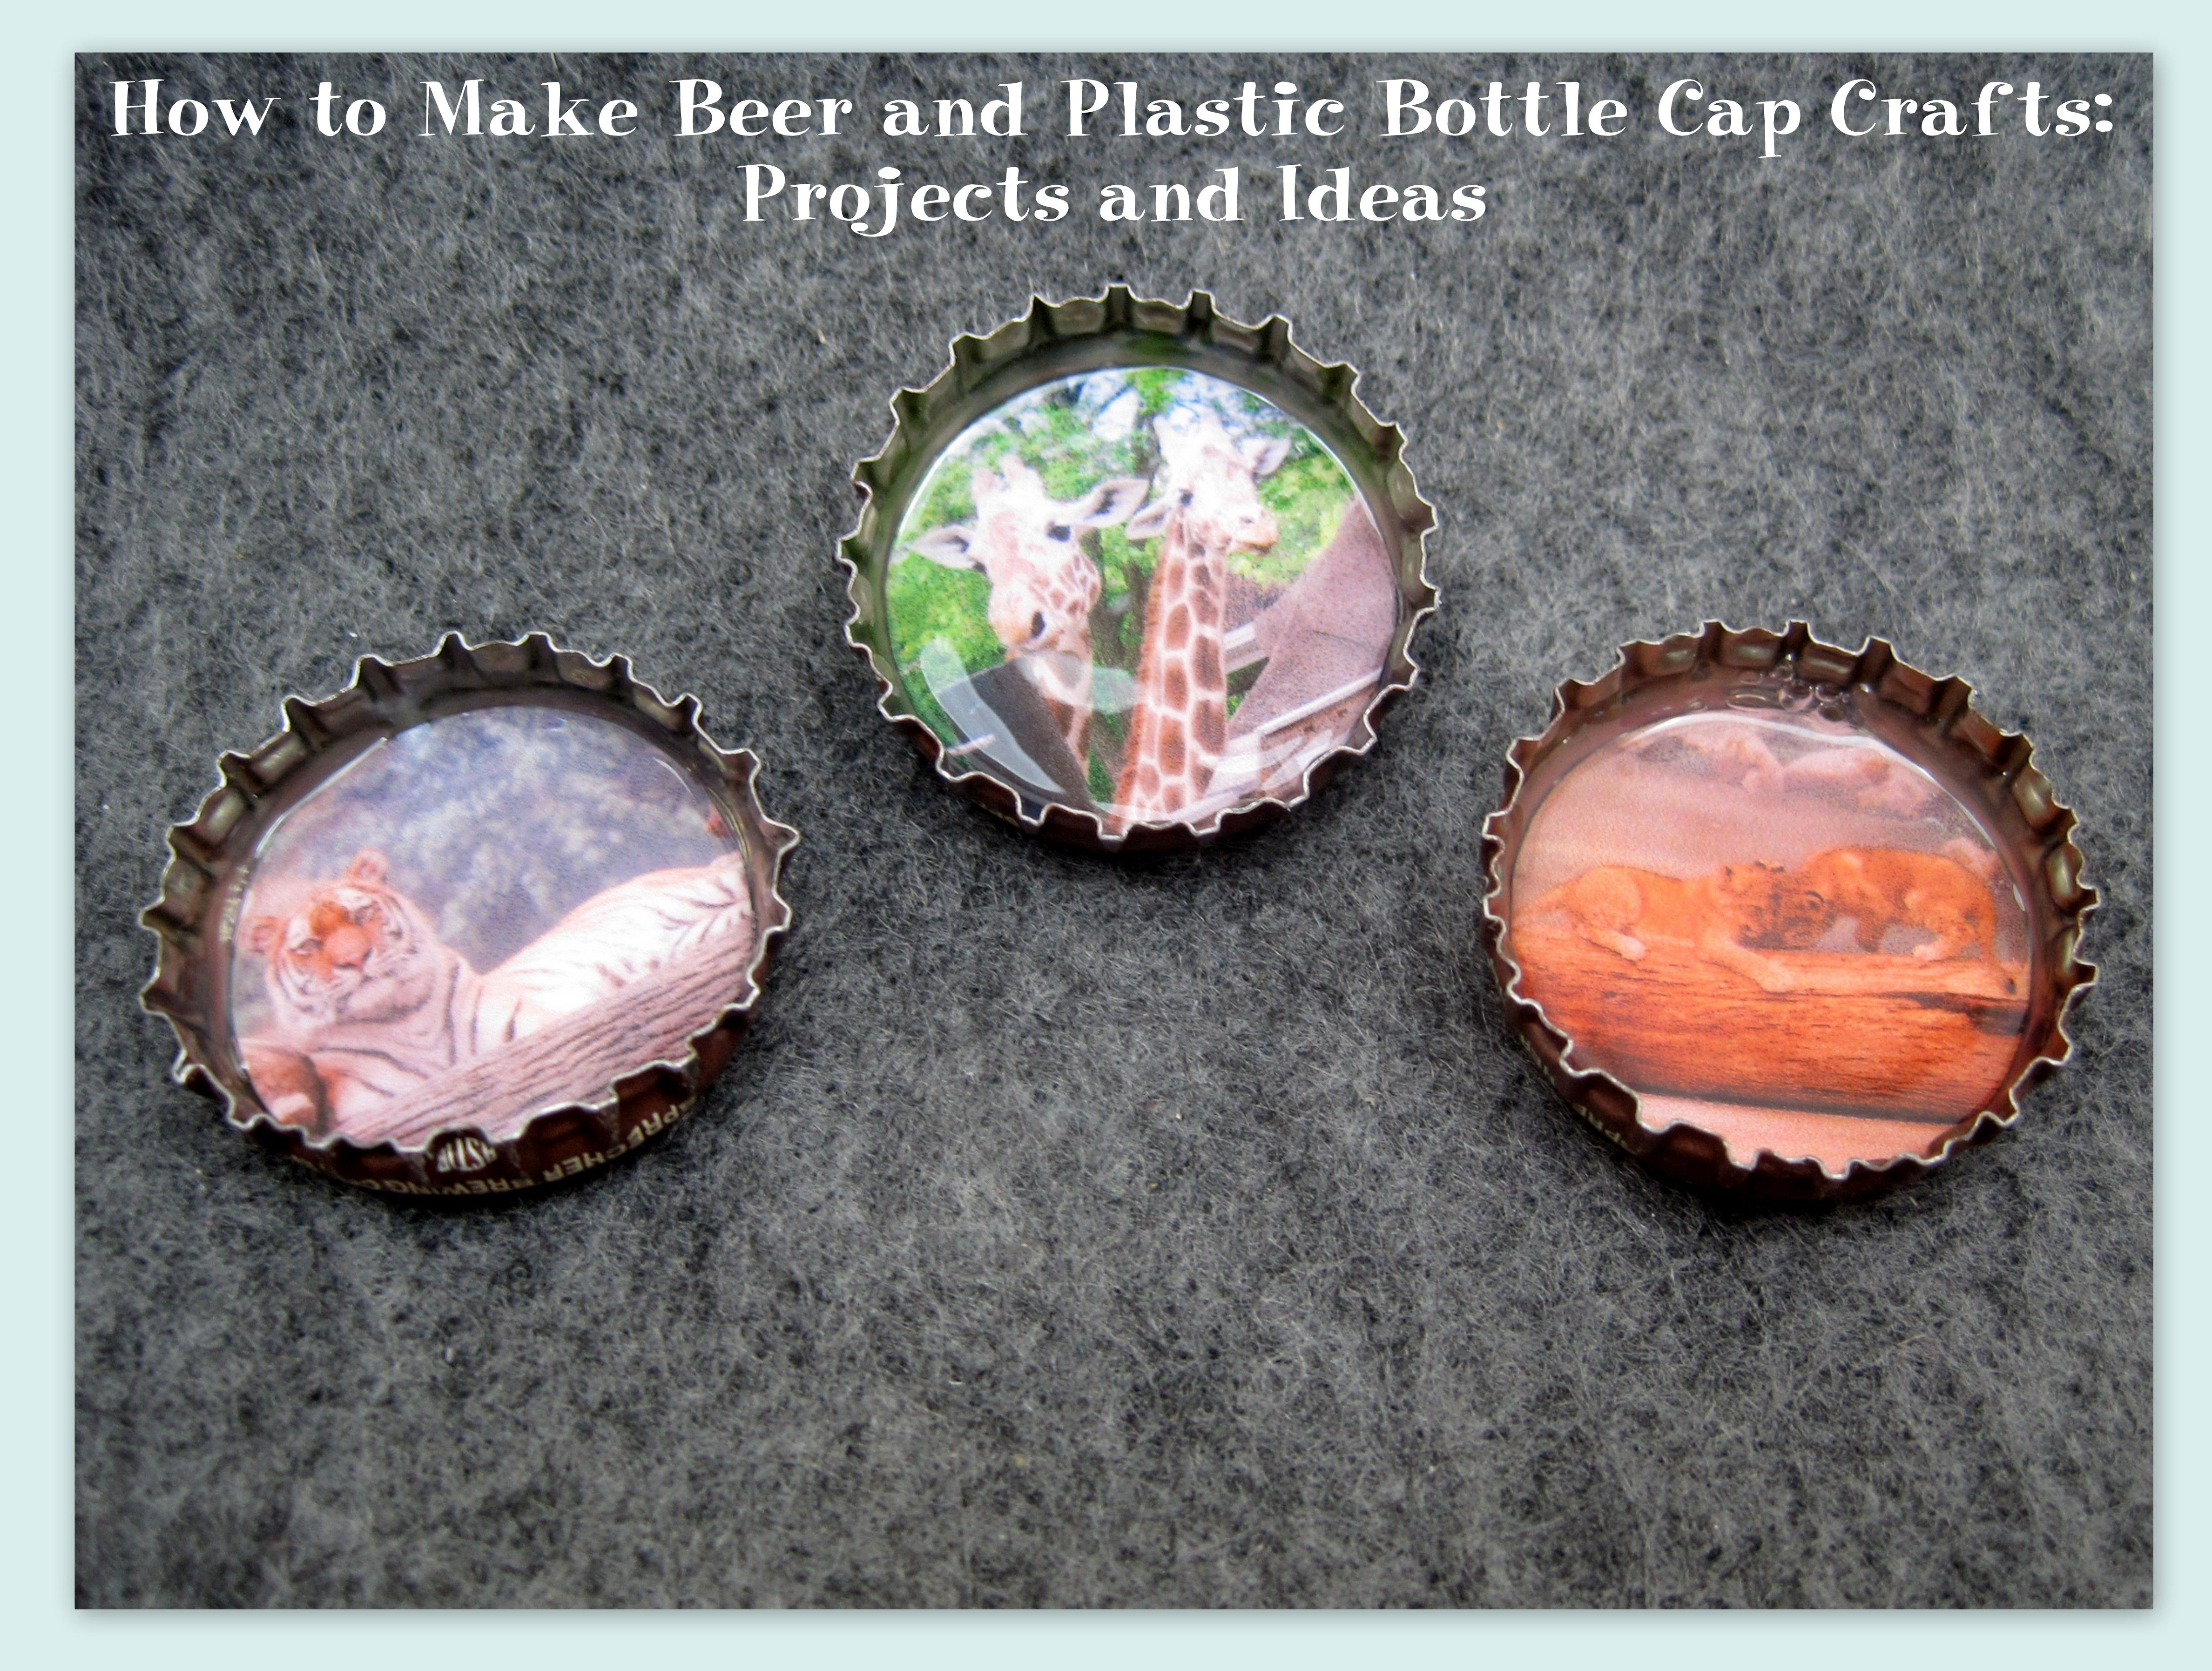 How to Make Beer and Plastic Bottle